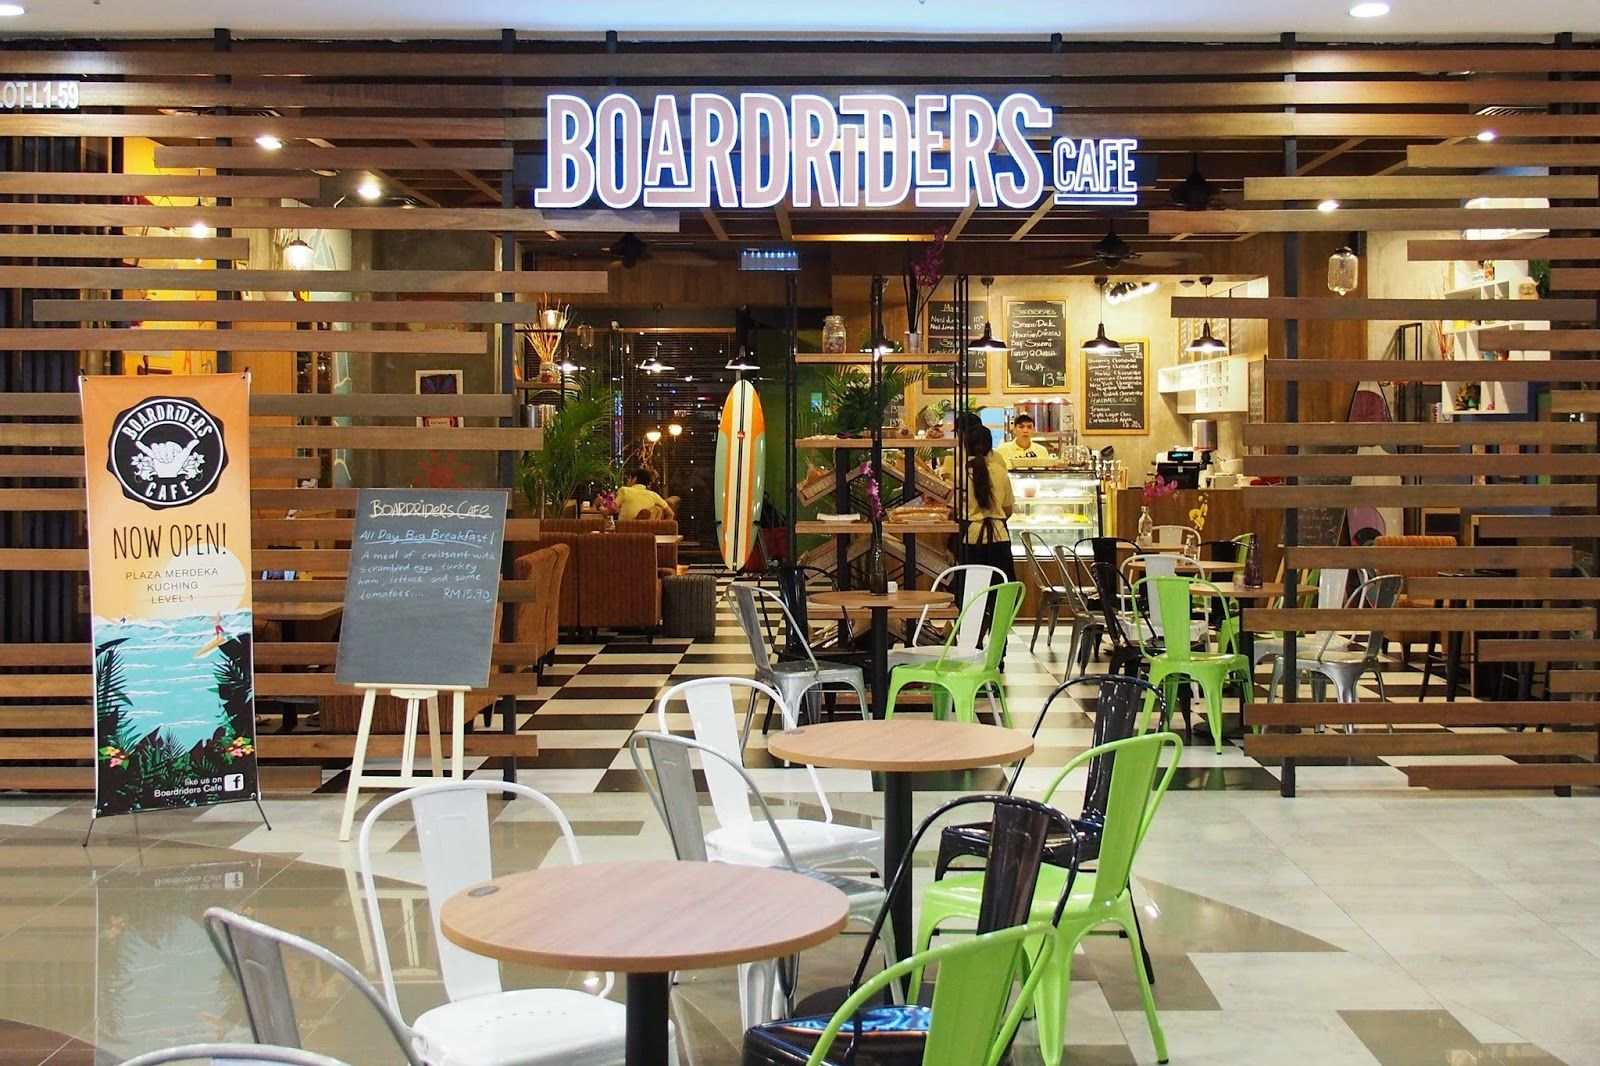 boardriders club images - Google Search